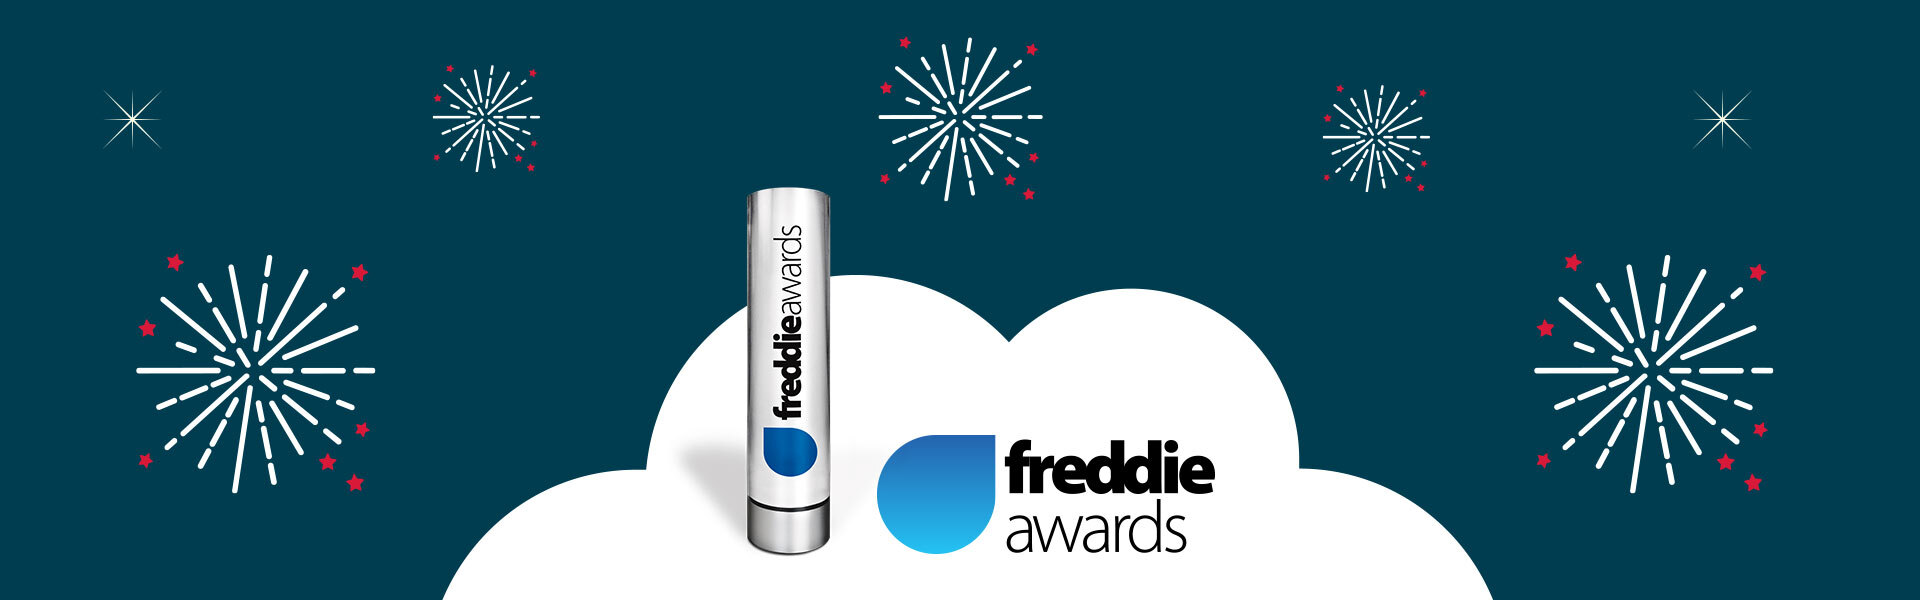 Freddie Award illustration